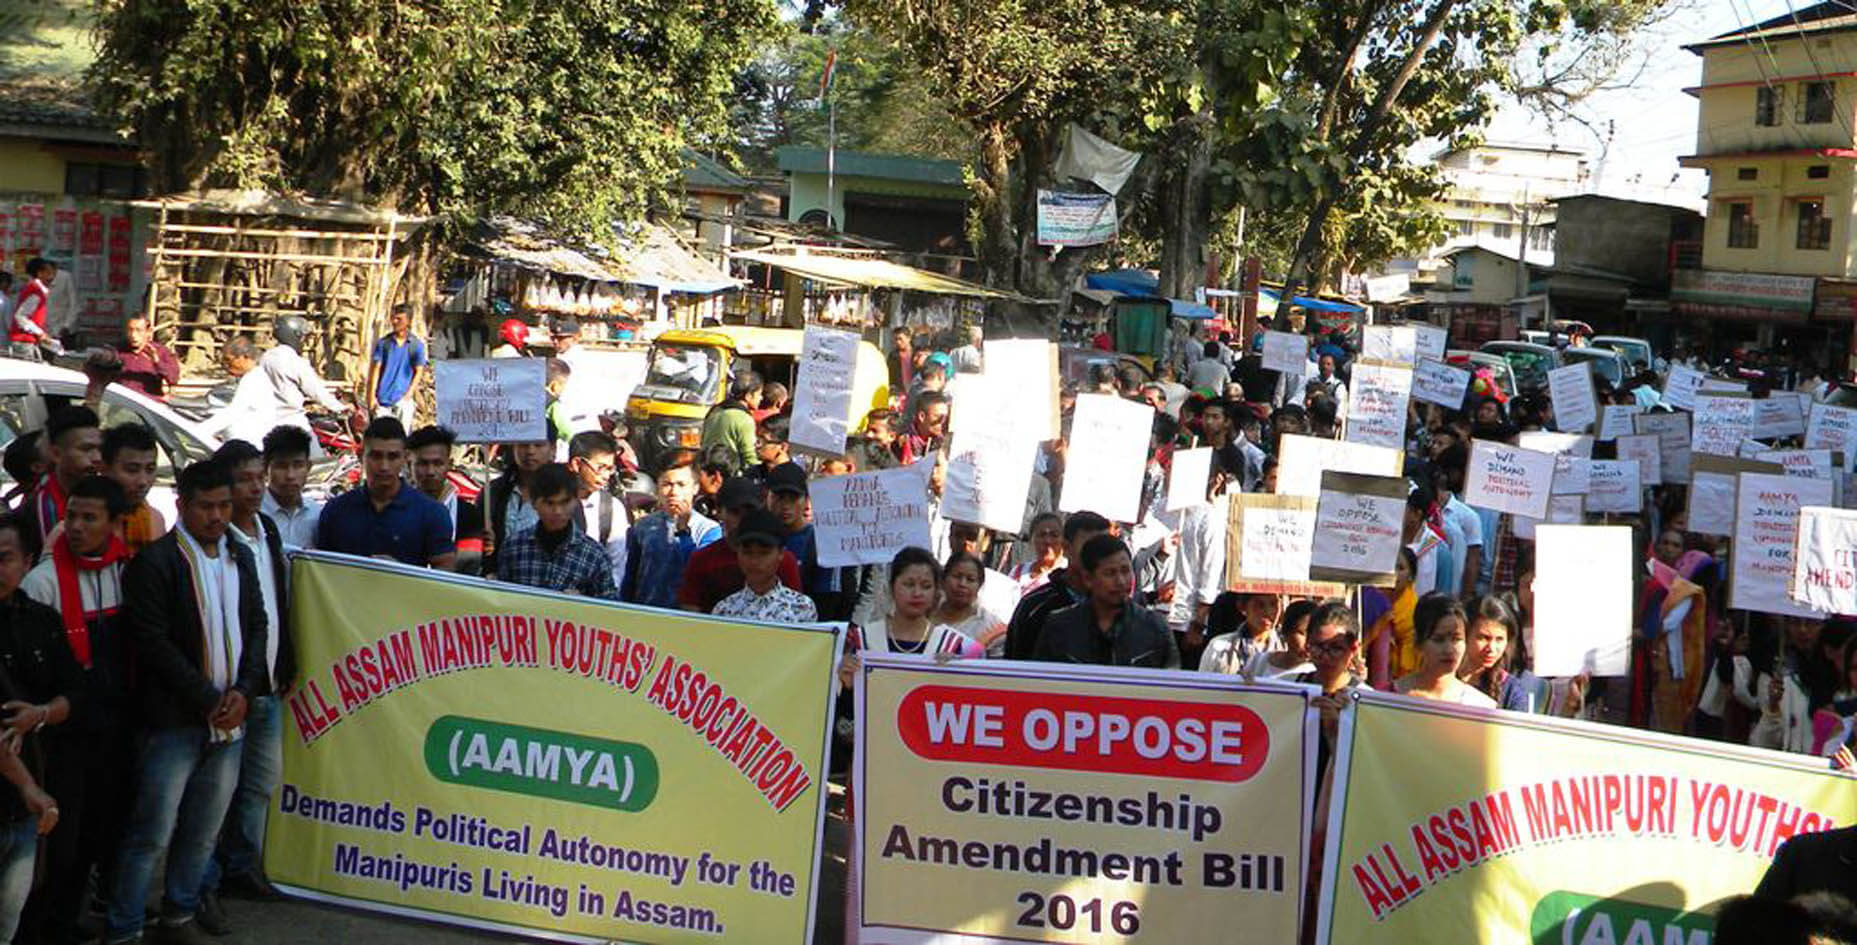 AAMYA for granting political autonomy to Manipuris living in Assam